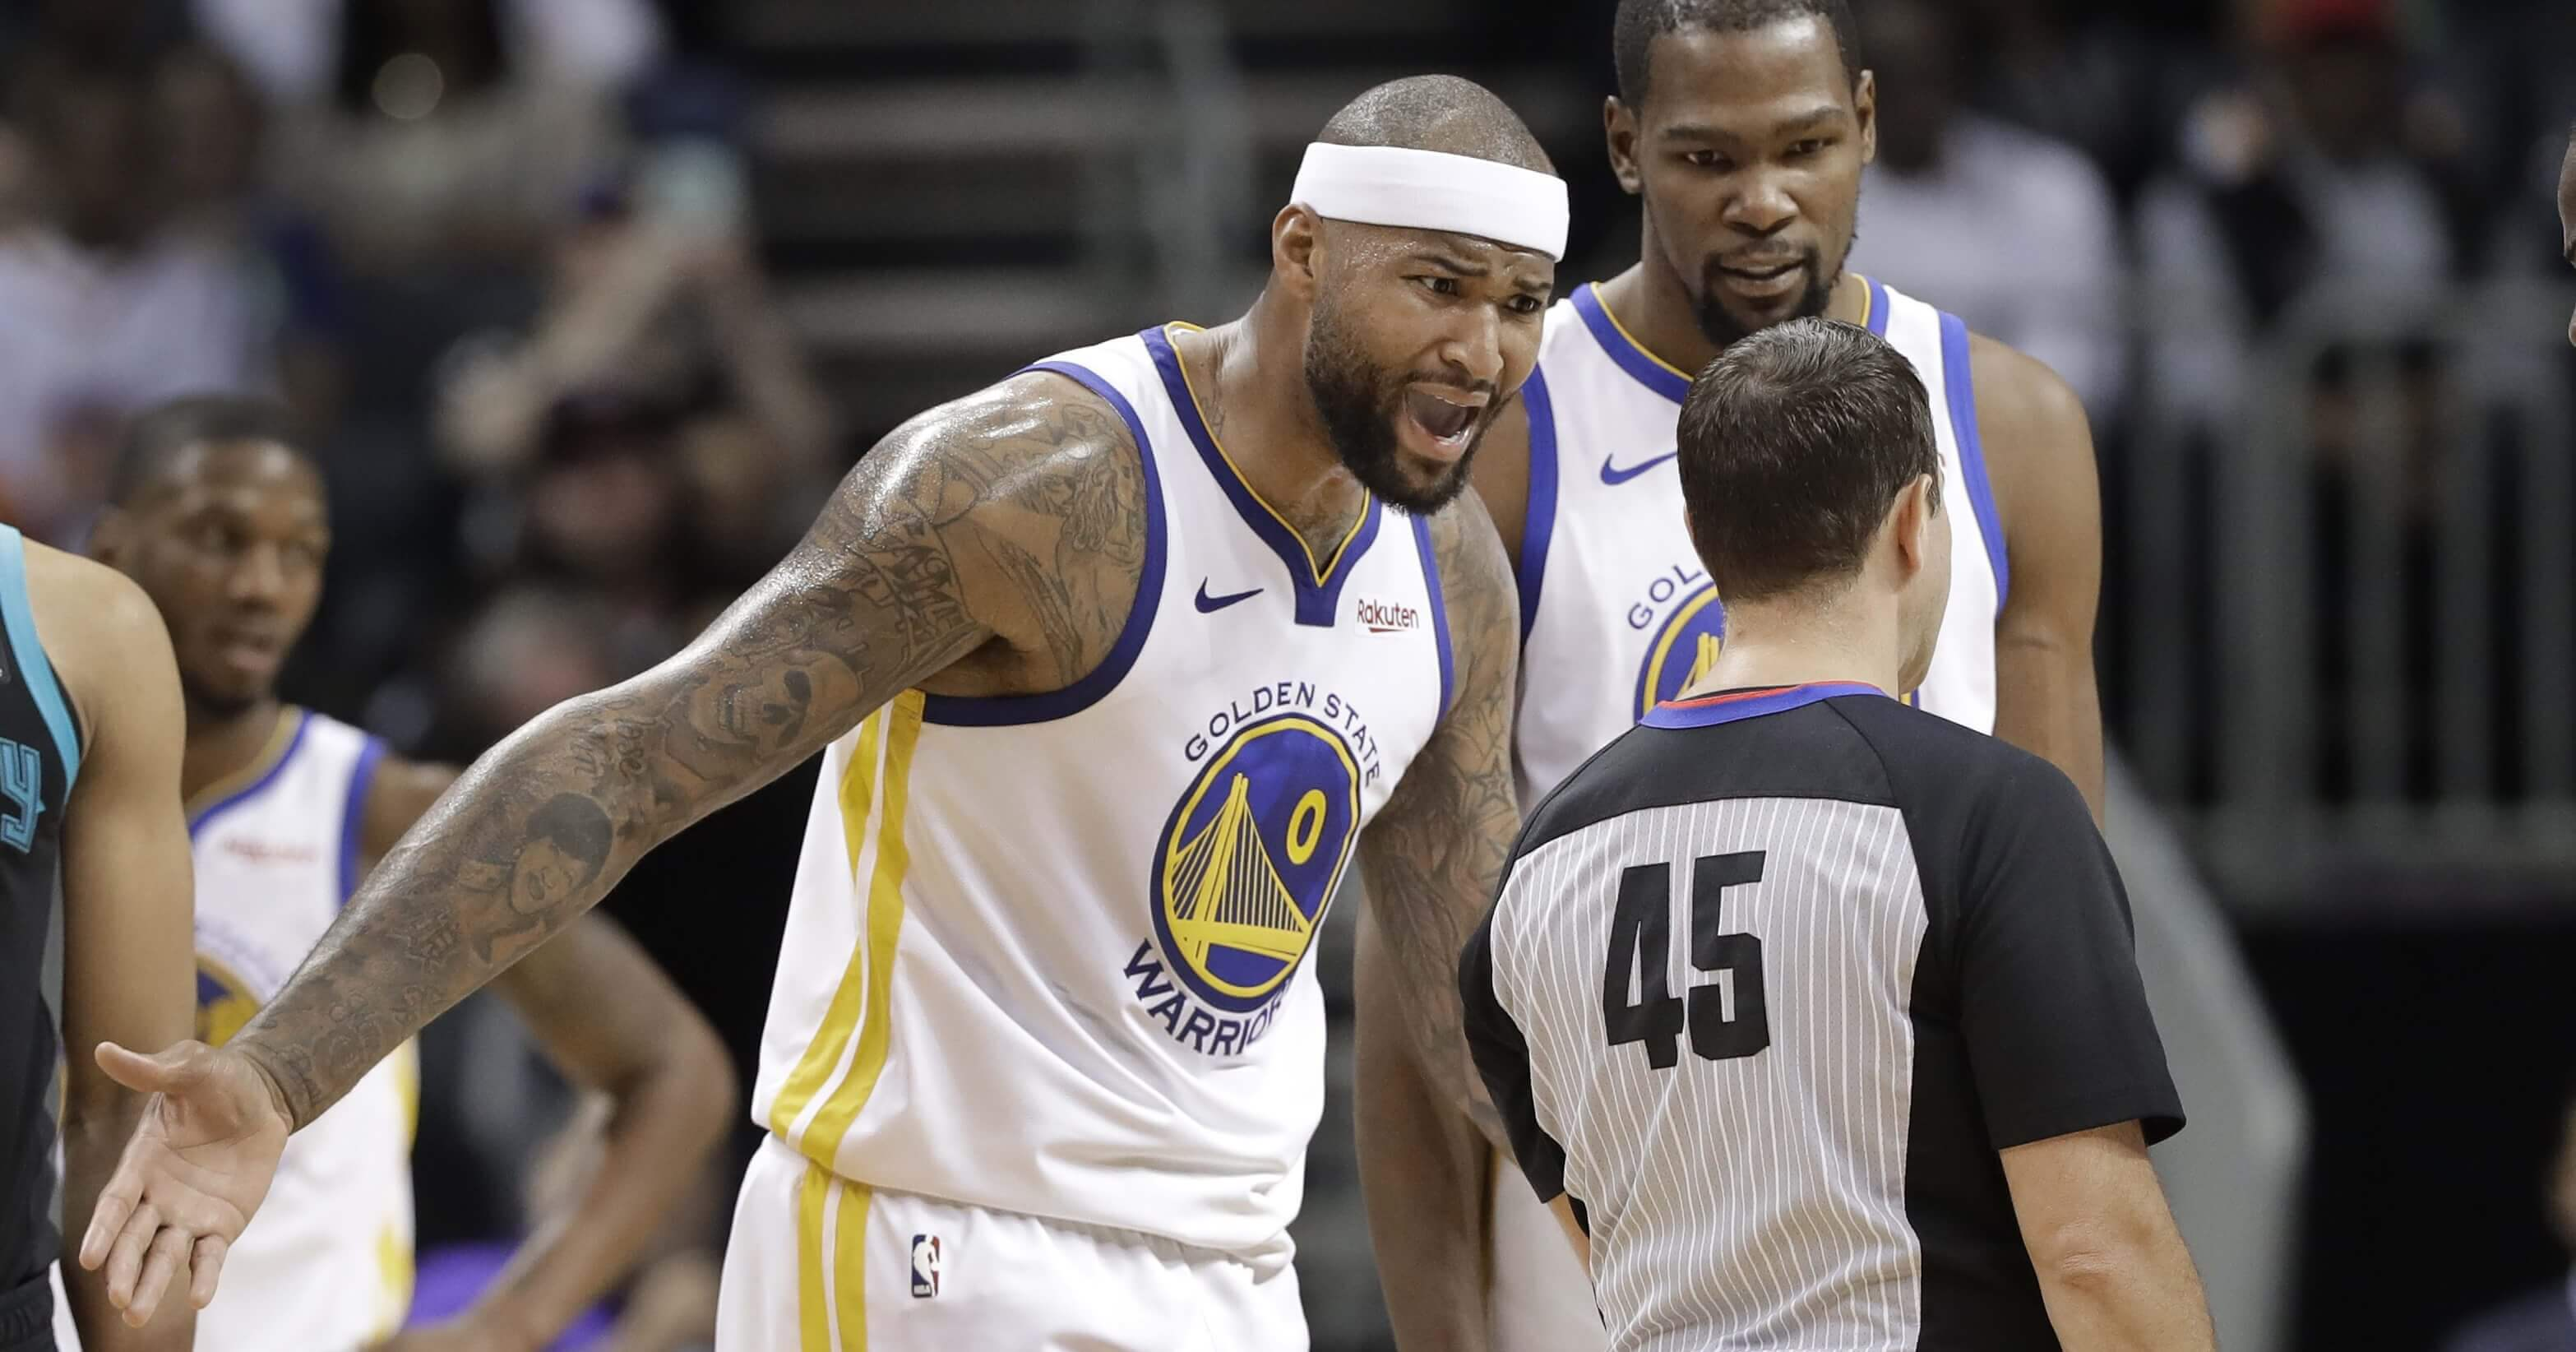 Golden State Warriors' DeMarcus Cousins reacts to being called for a technical foul by referee Brian Forte during the second half against the Charlotte Hornets in Charlotte, N.C., on Monday.